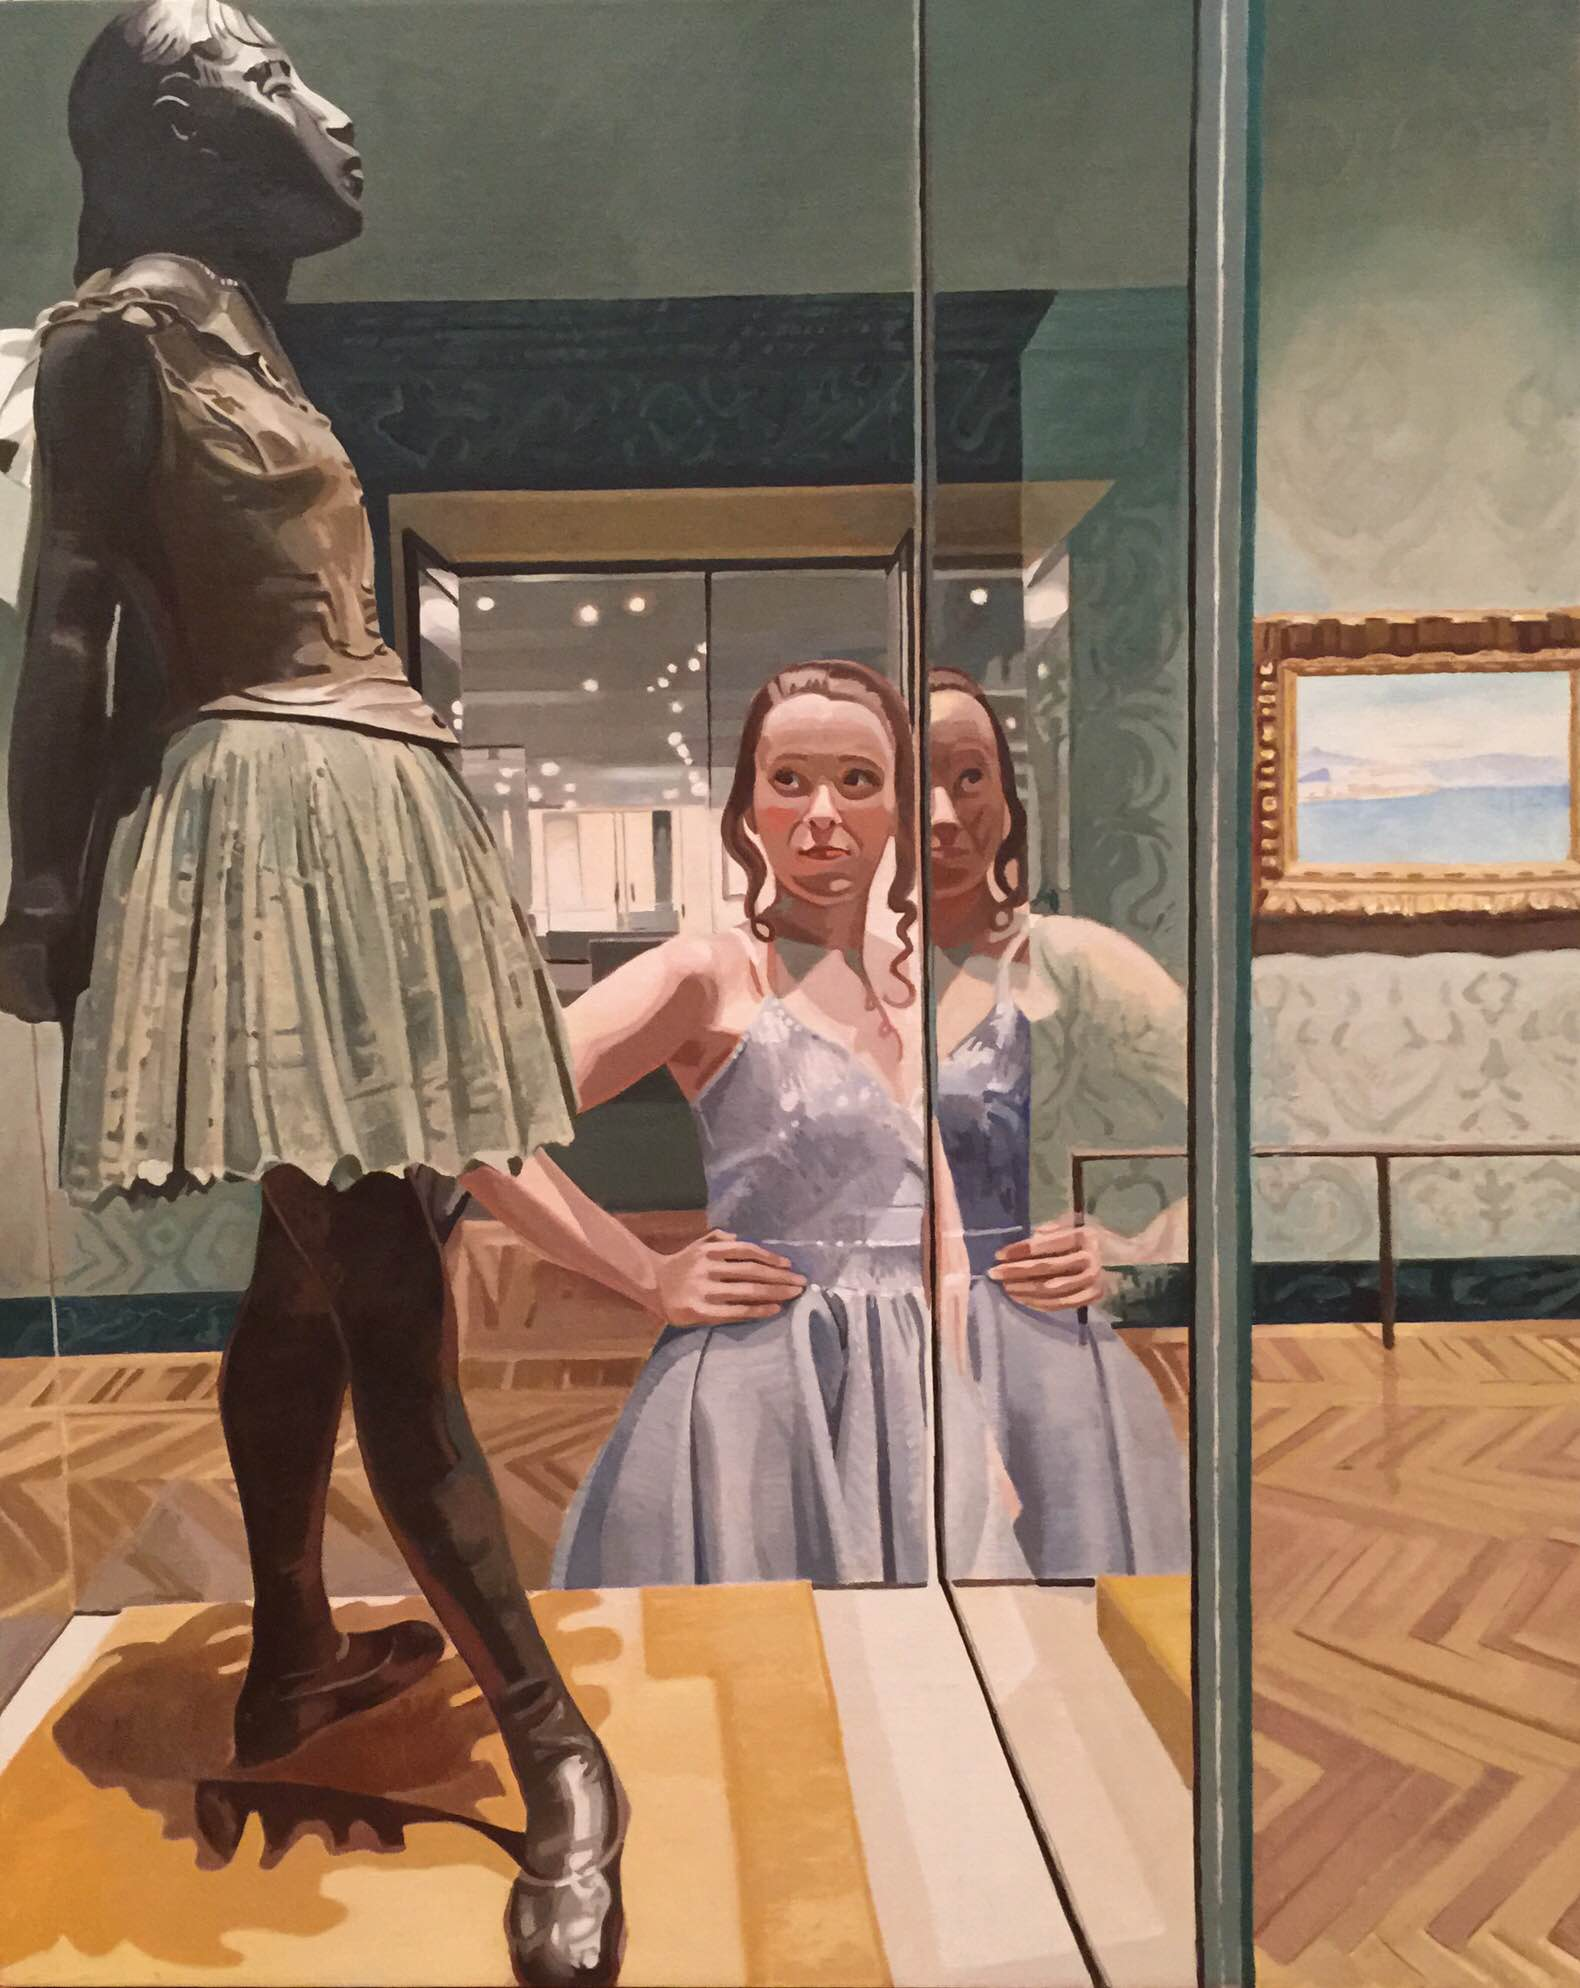 Day with Degas, 2016 Exhibit of AD20/21